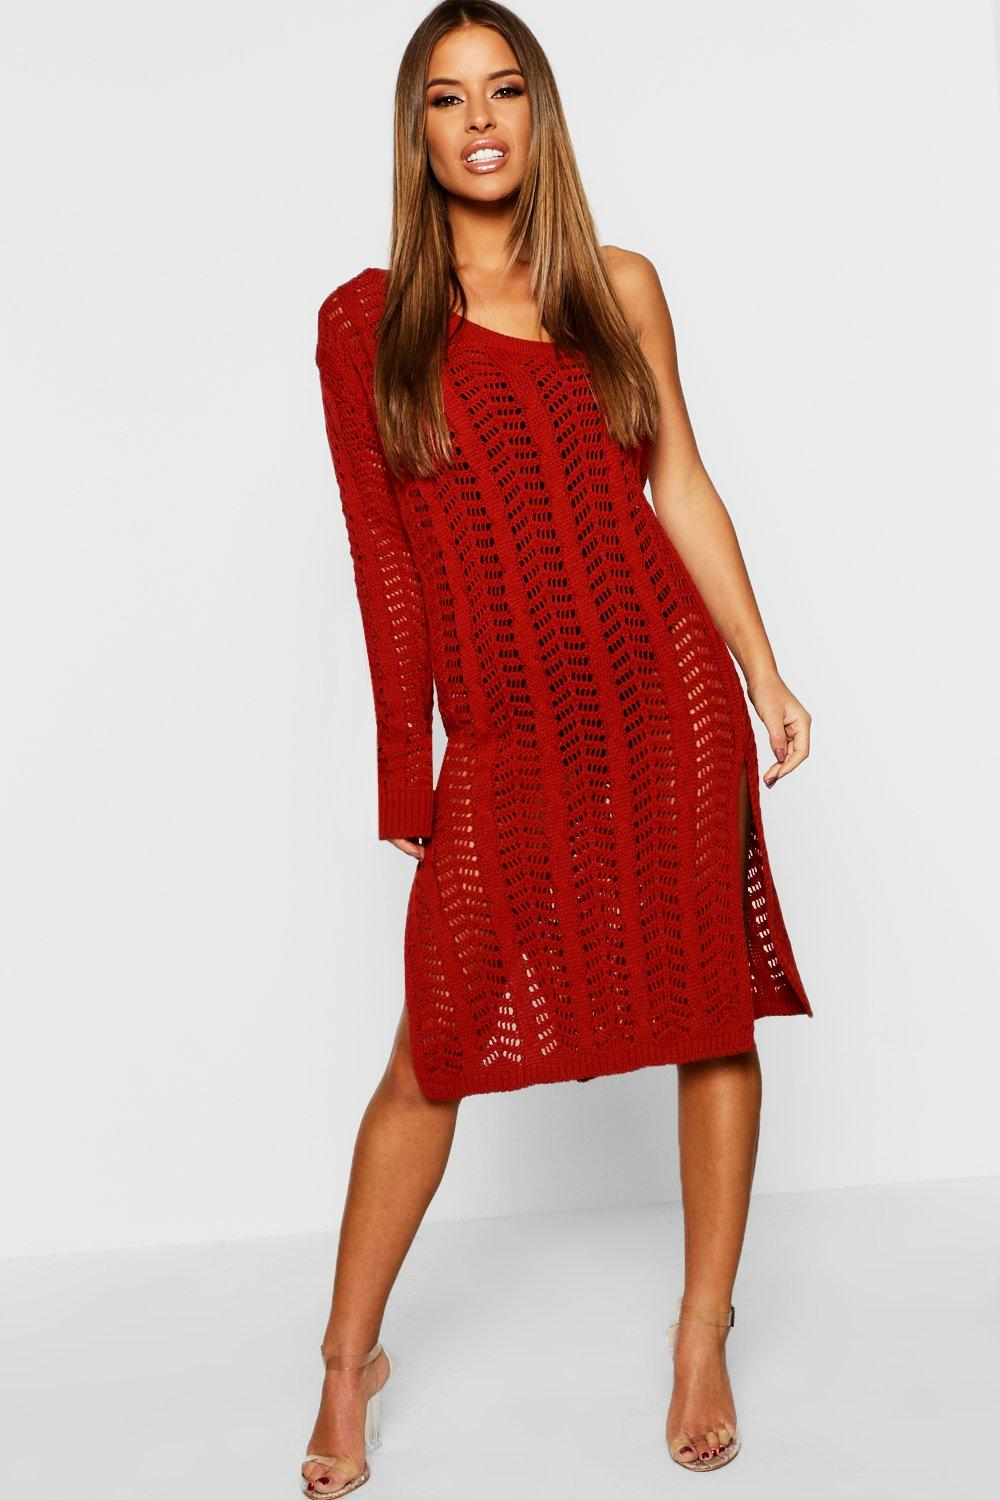 petite one shoulder knitted dress | boohoo